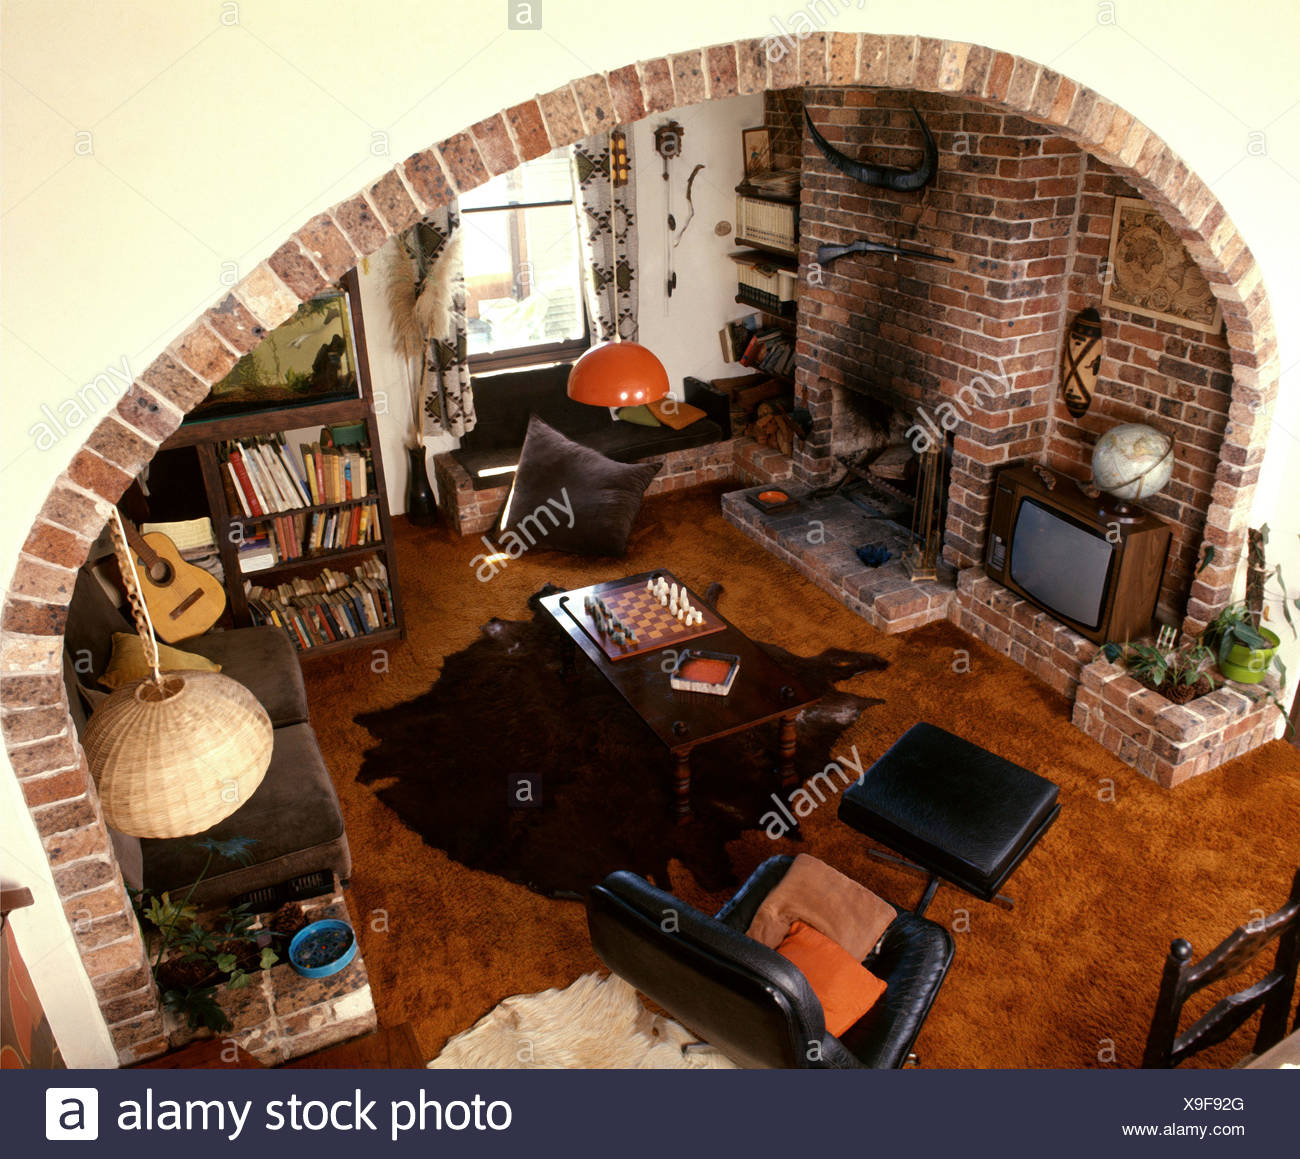 Aerial View Of Living Room Large Archway In Cream Wall Lined Bricks